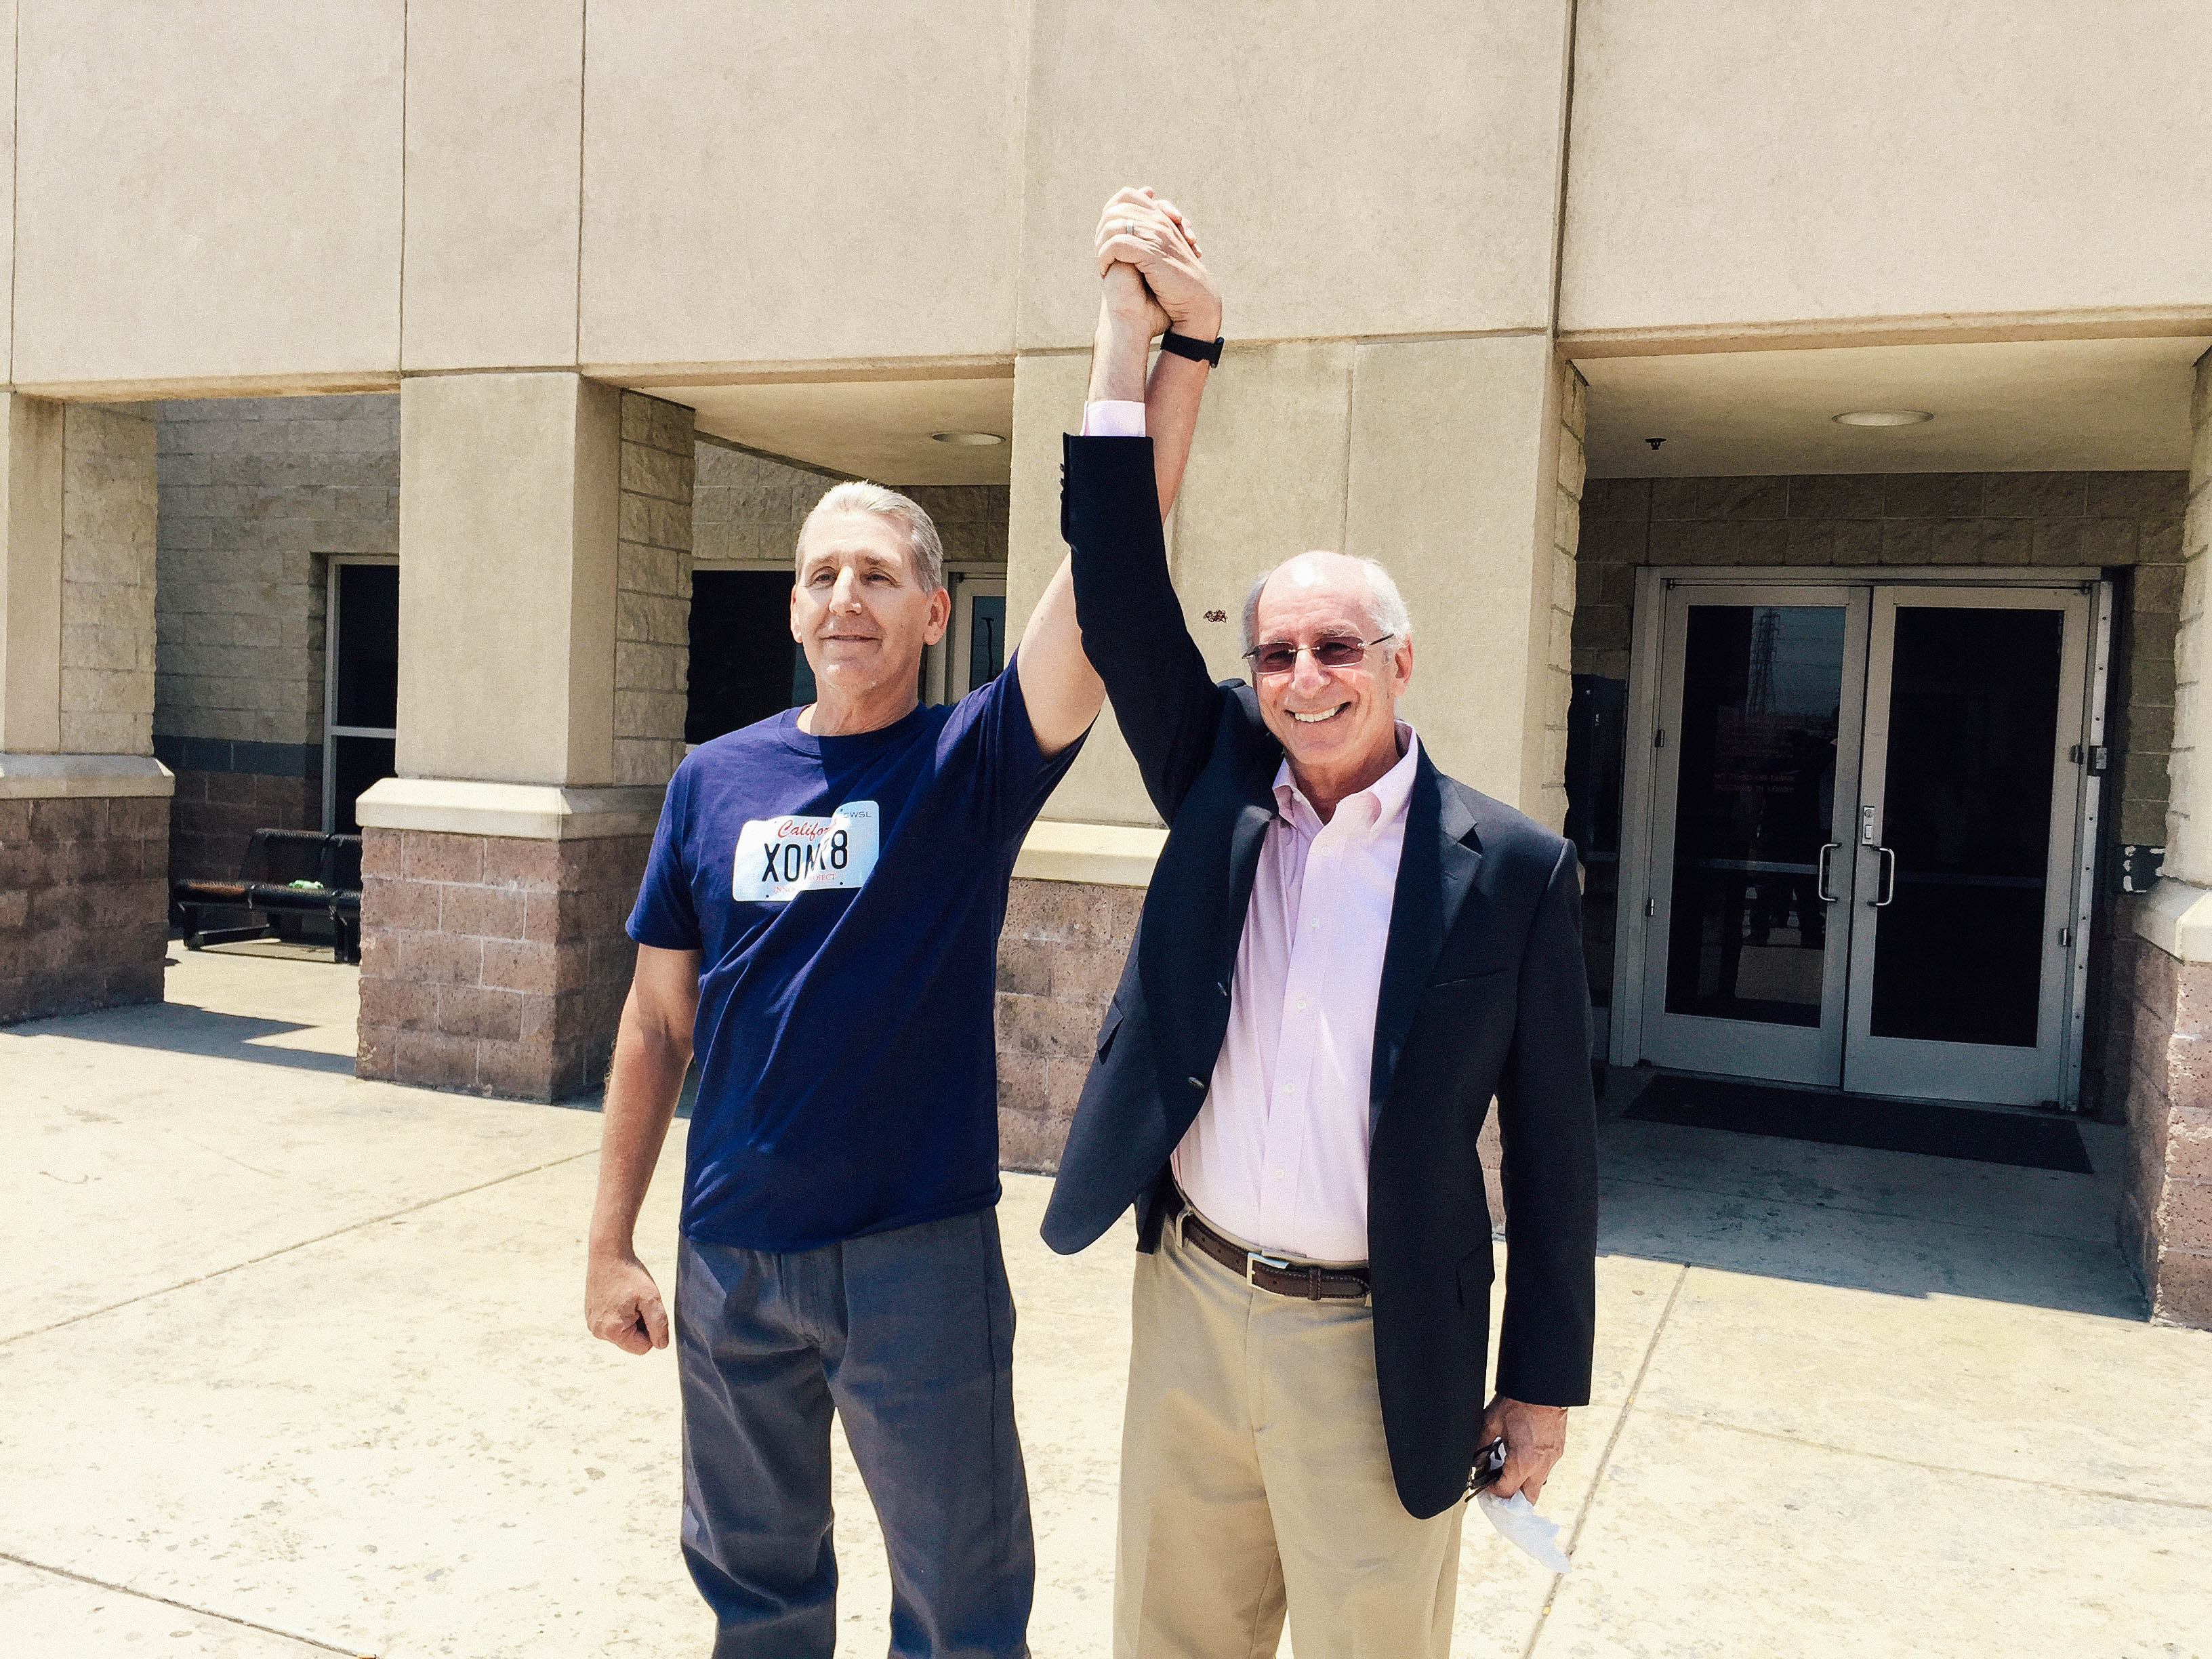 Bill Richards with his attorney, Jan Stiglitz, on the day that Richards was released.